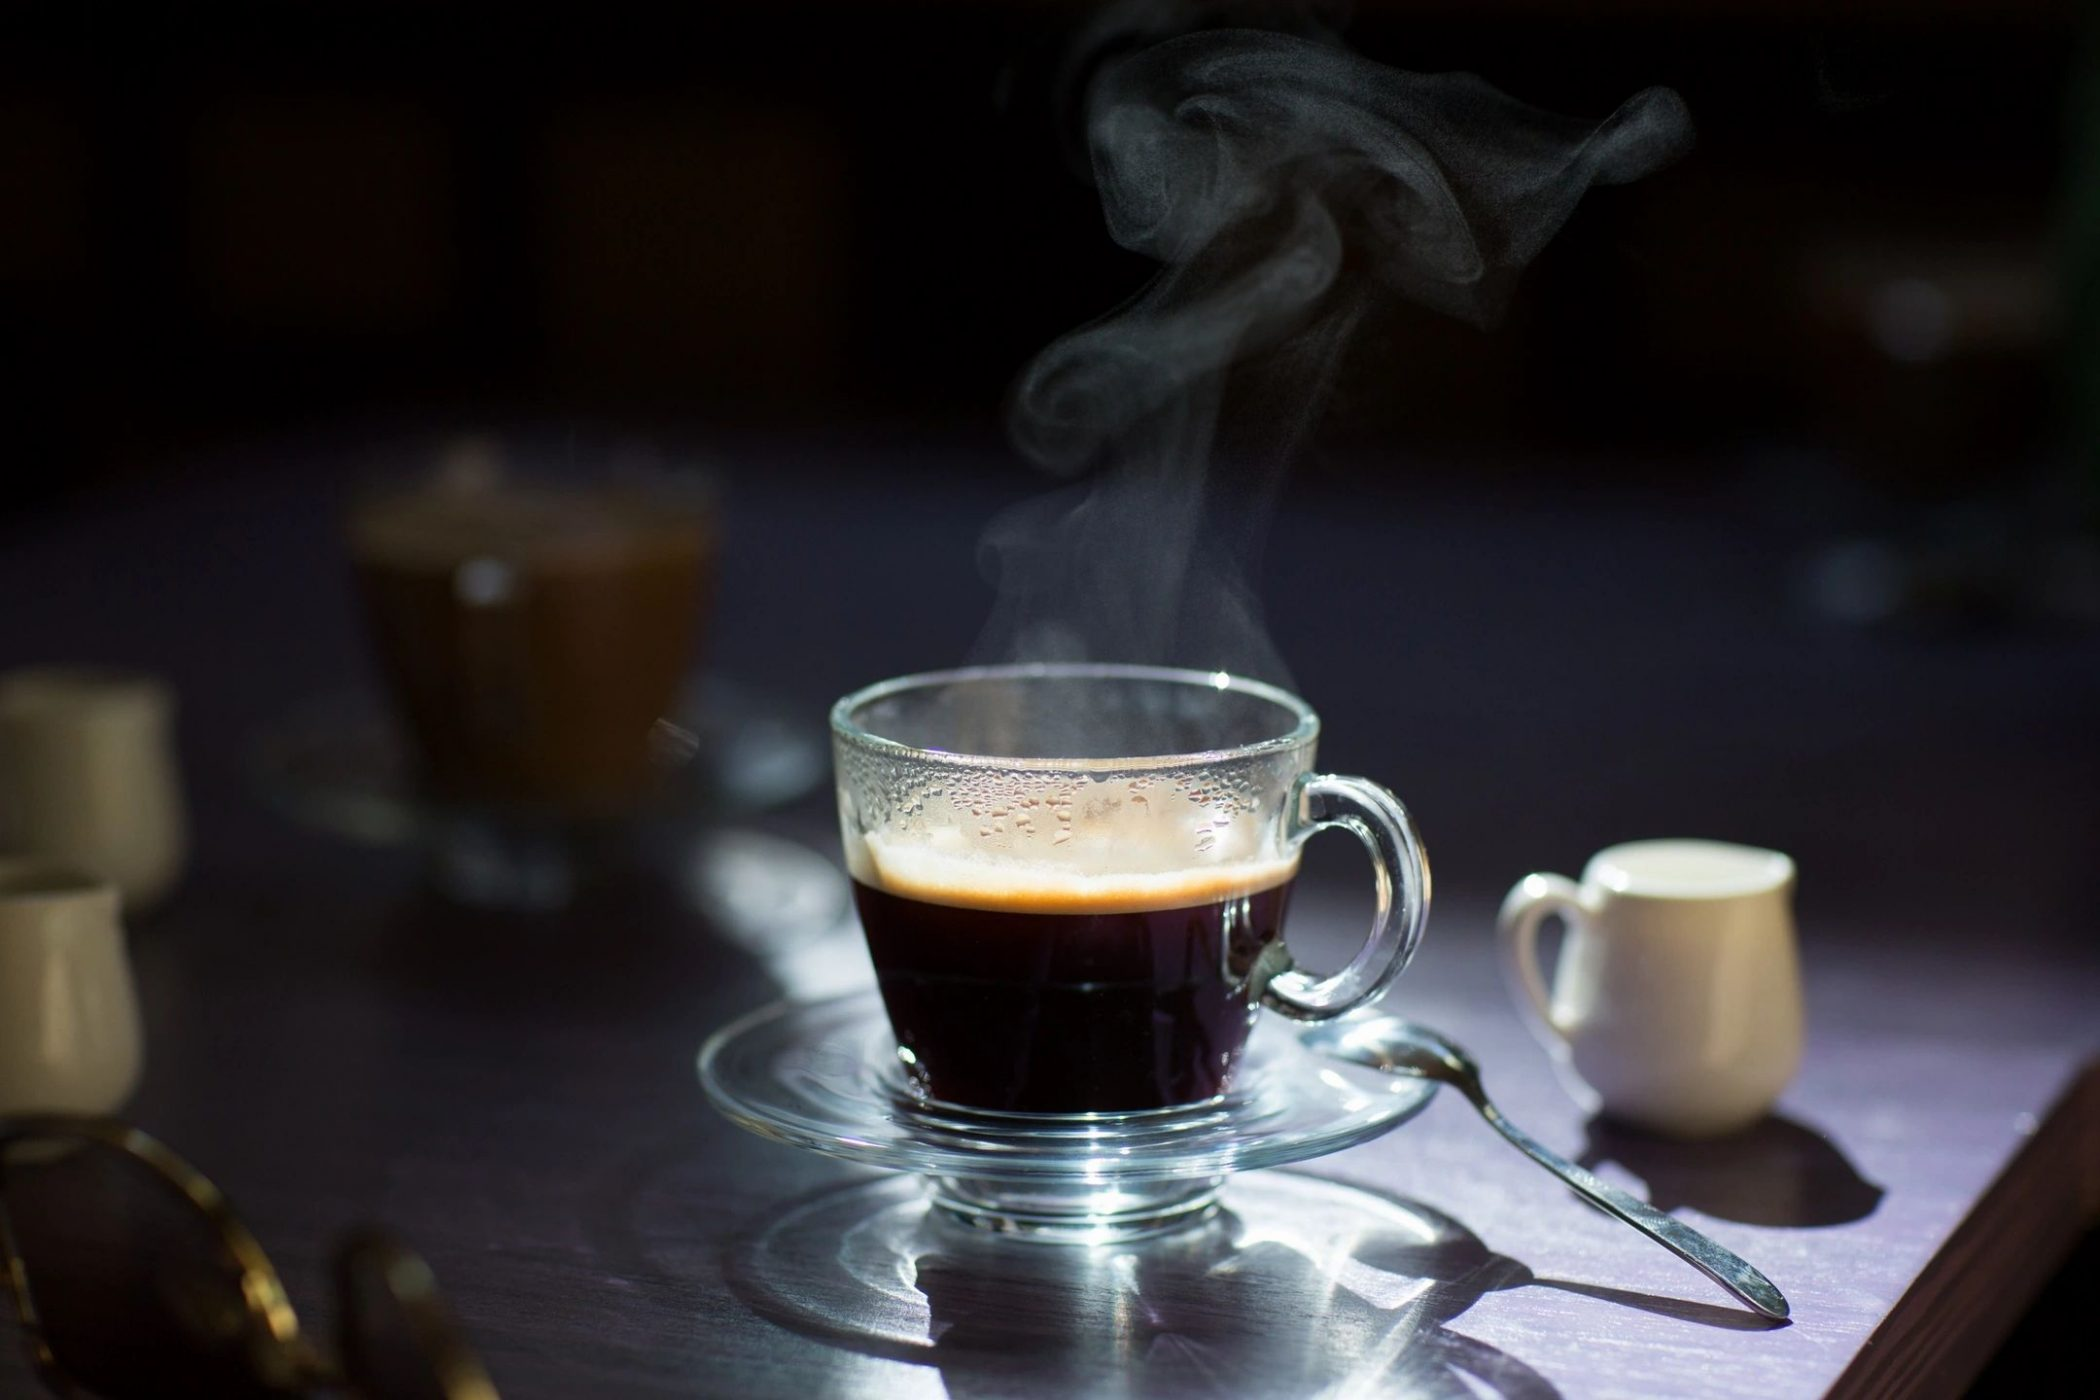 Steaming coffee cup for blog by DC widow writer Marjorie Brimley